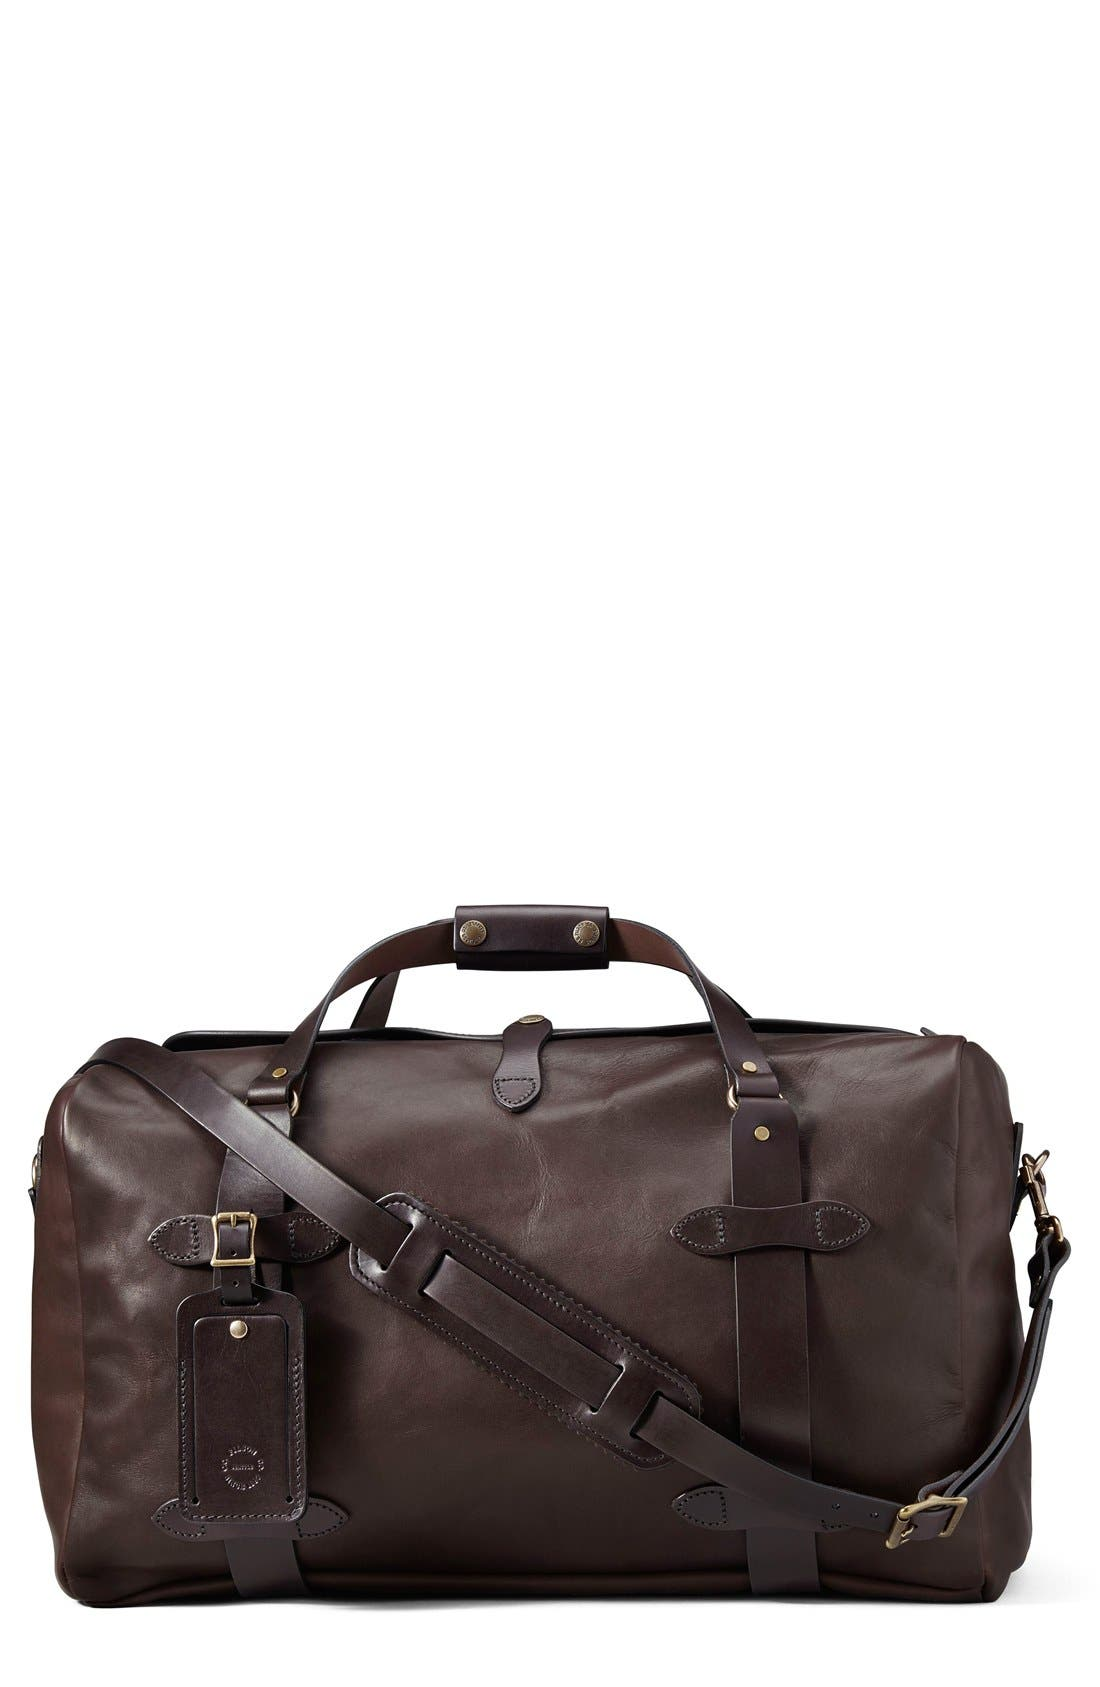 Filson Weatherproof Leather Duffel Bag